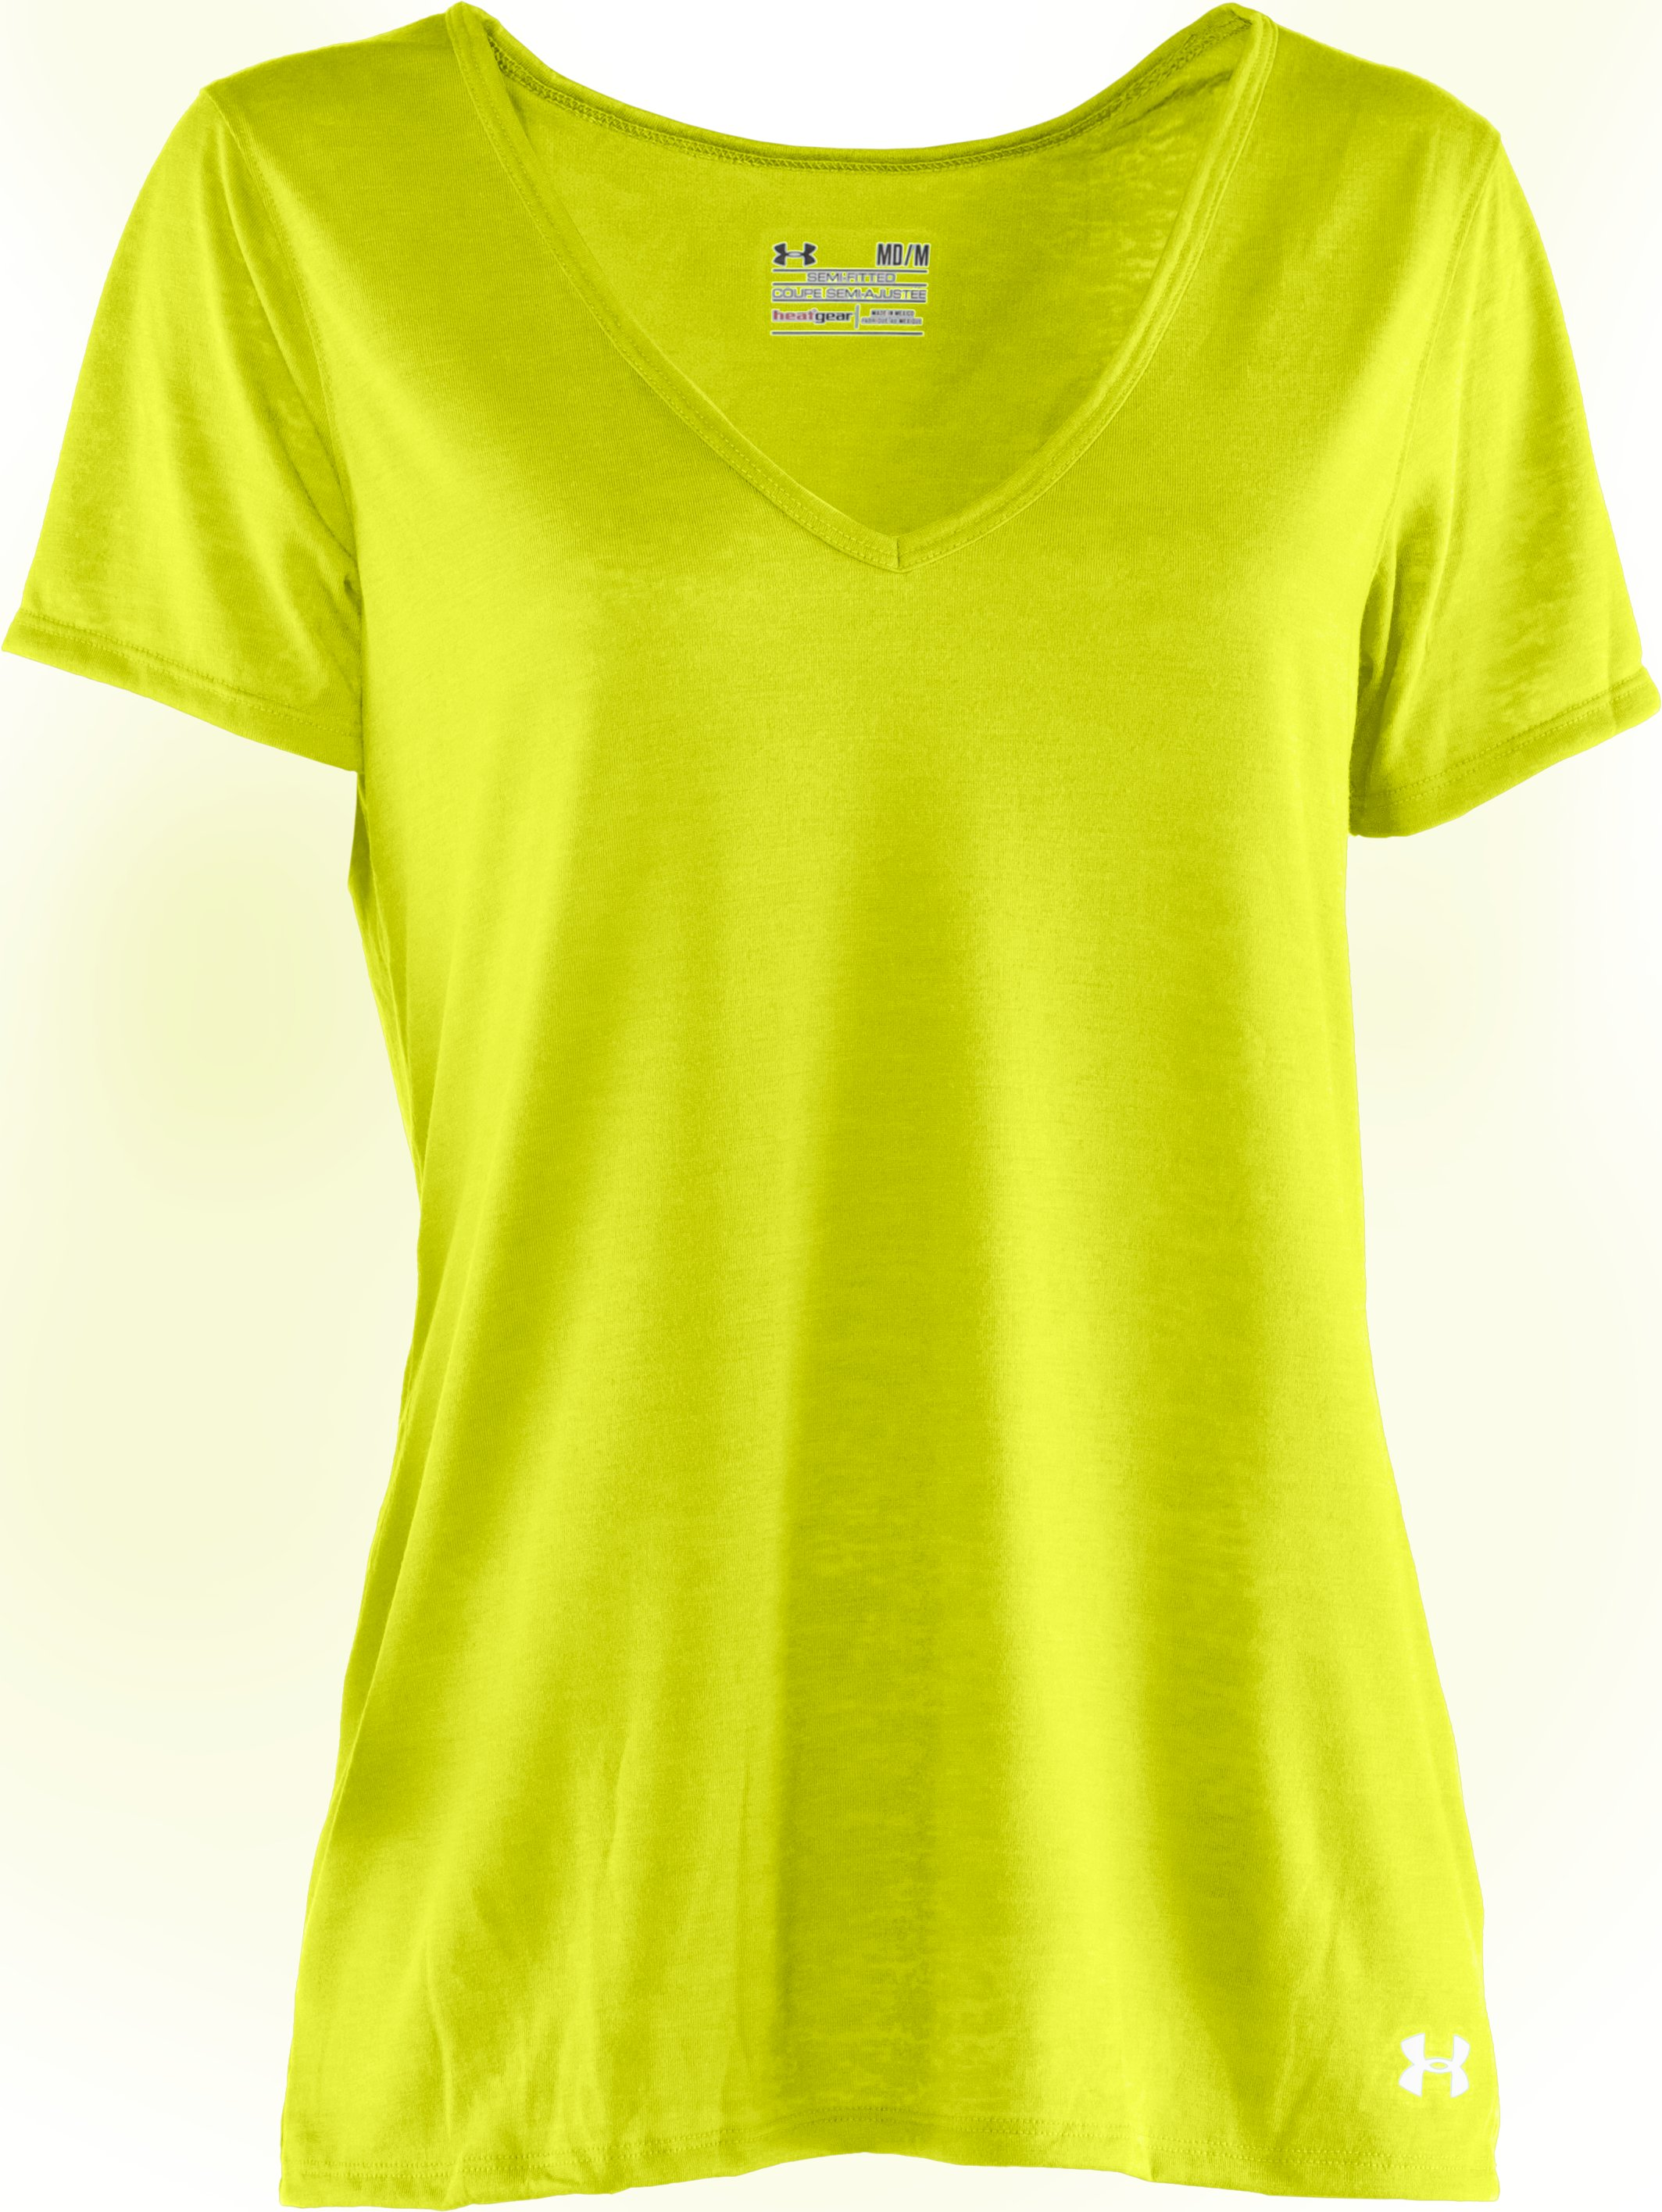 Women's Achieve Burnout T-Shirt, High-Vis Yellow